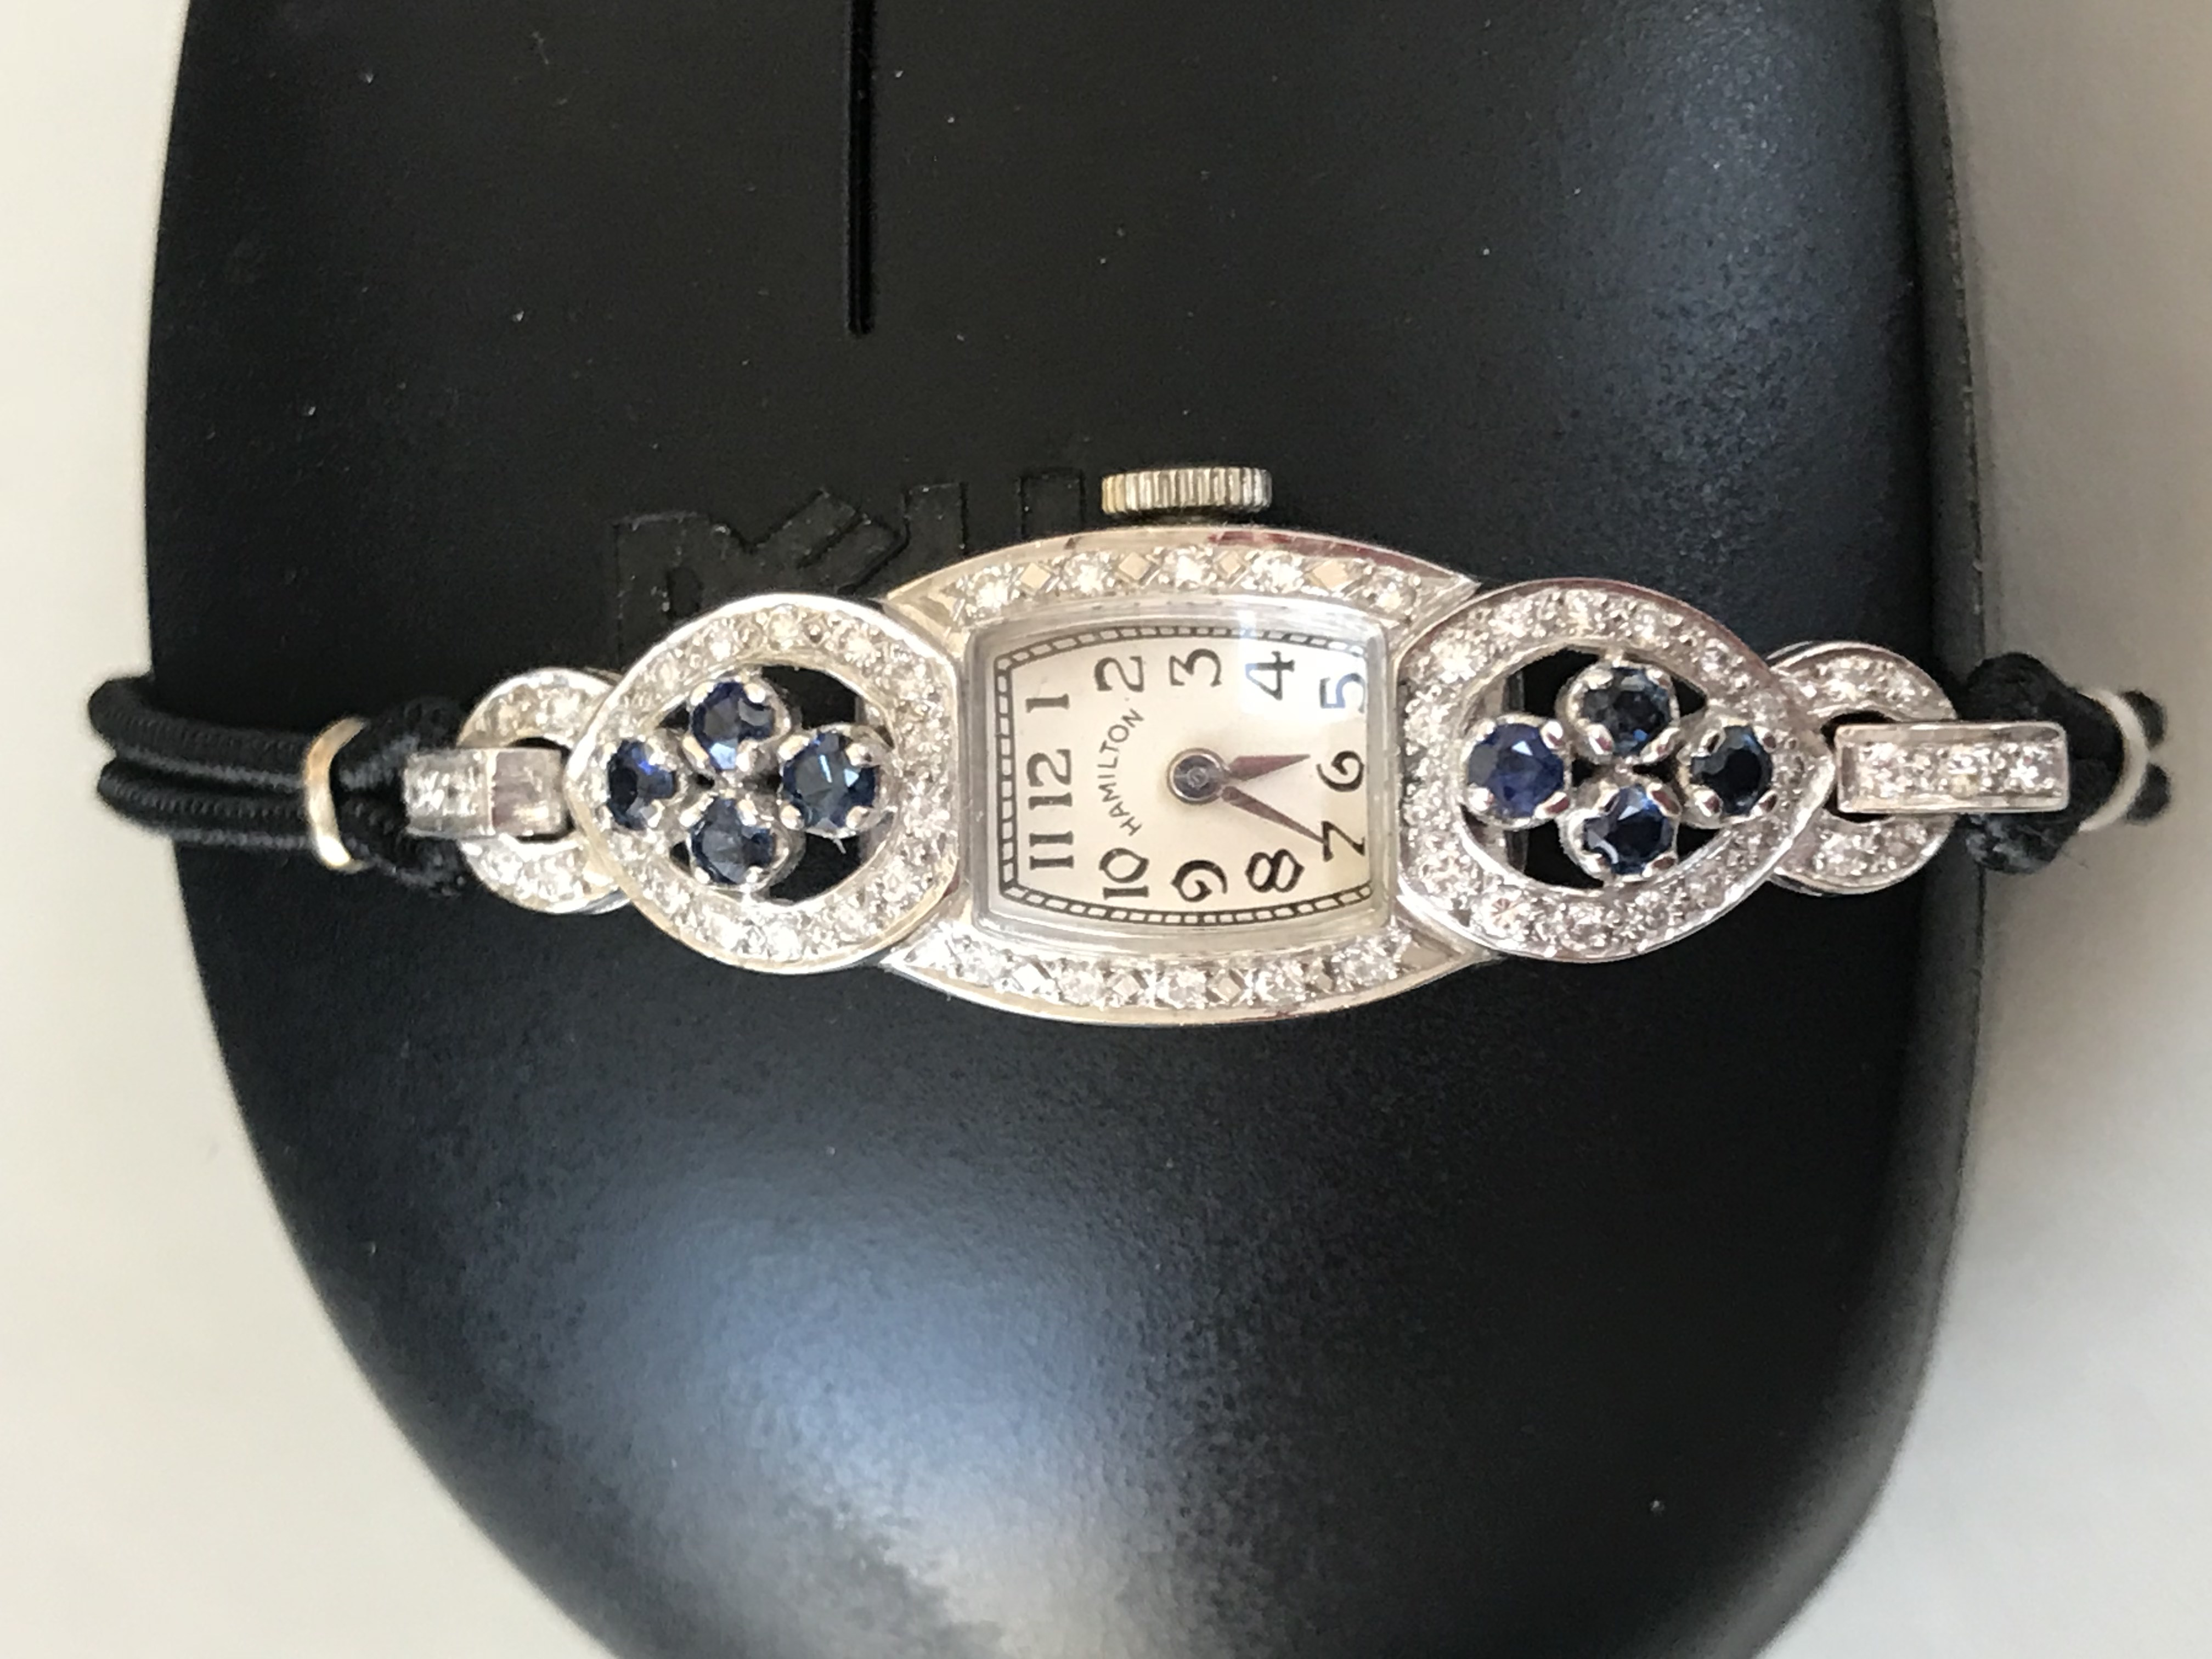 Lady's 14k White Gold Watch w. Diamonds and Sapphires